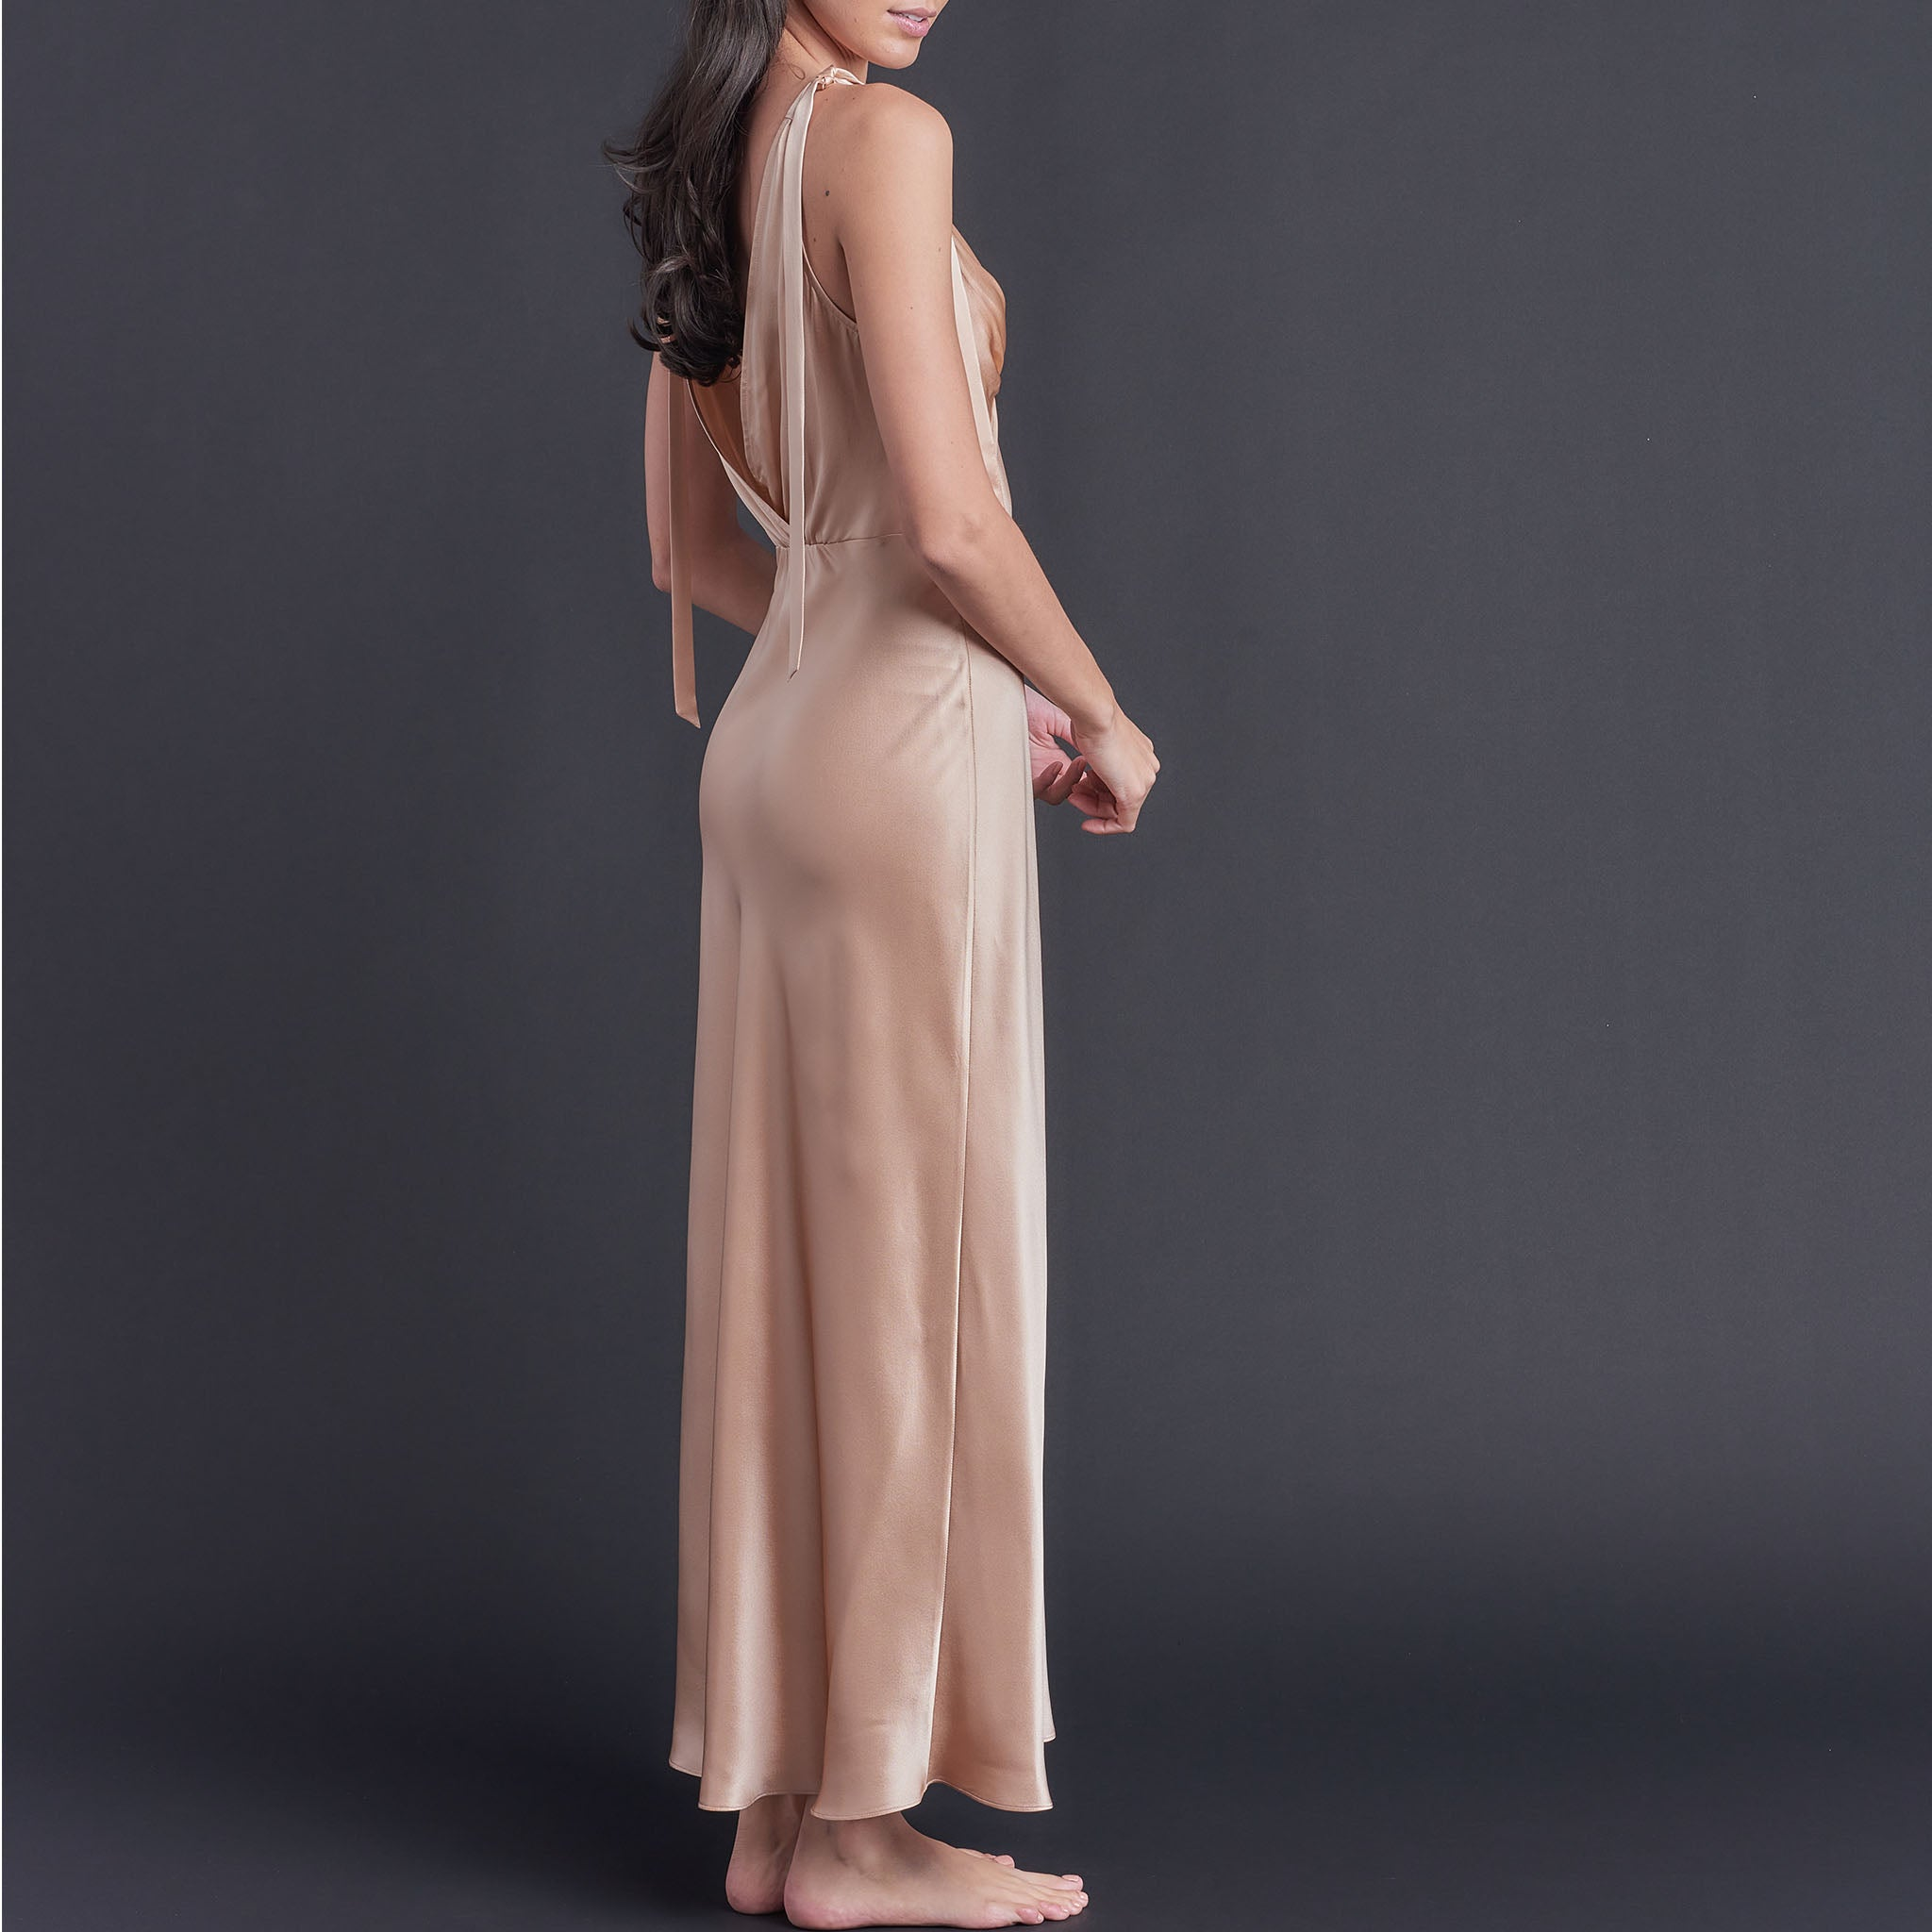 Ava Silk Charmeuse Slip in Blush